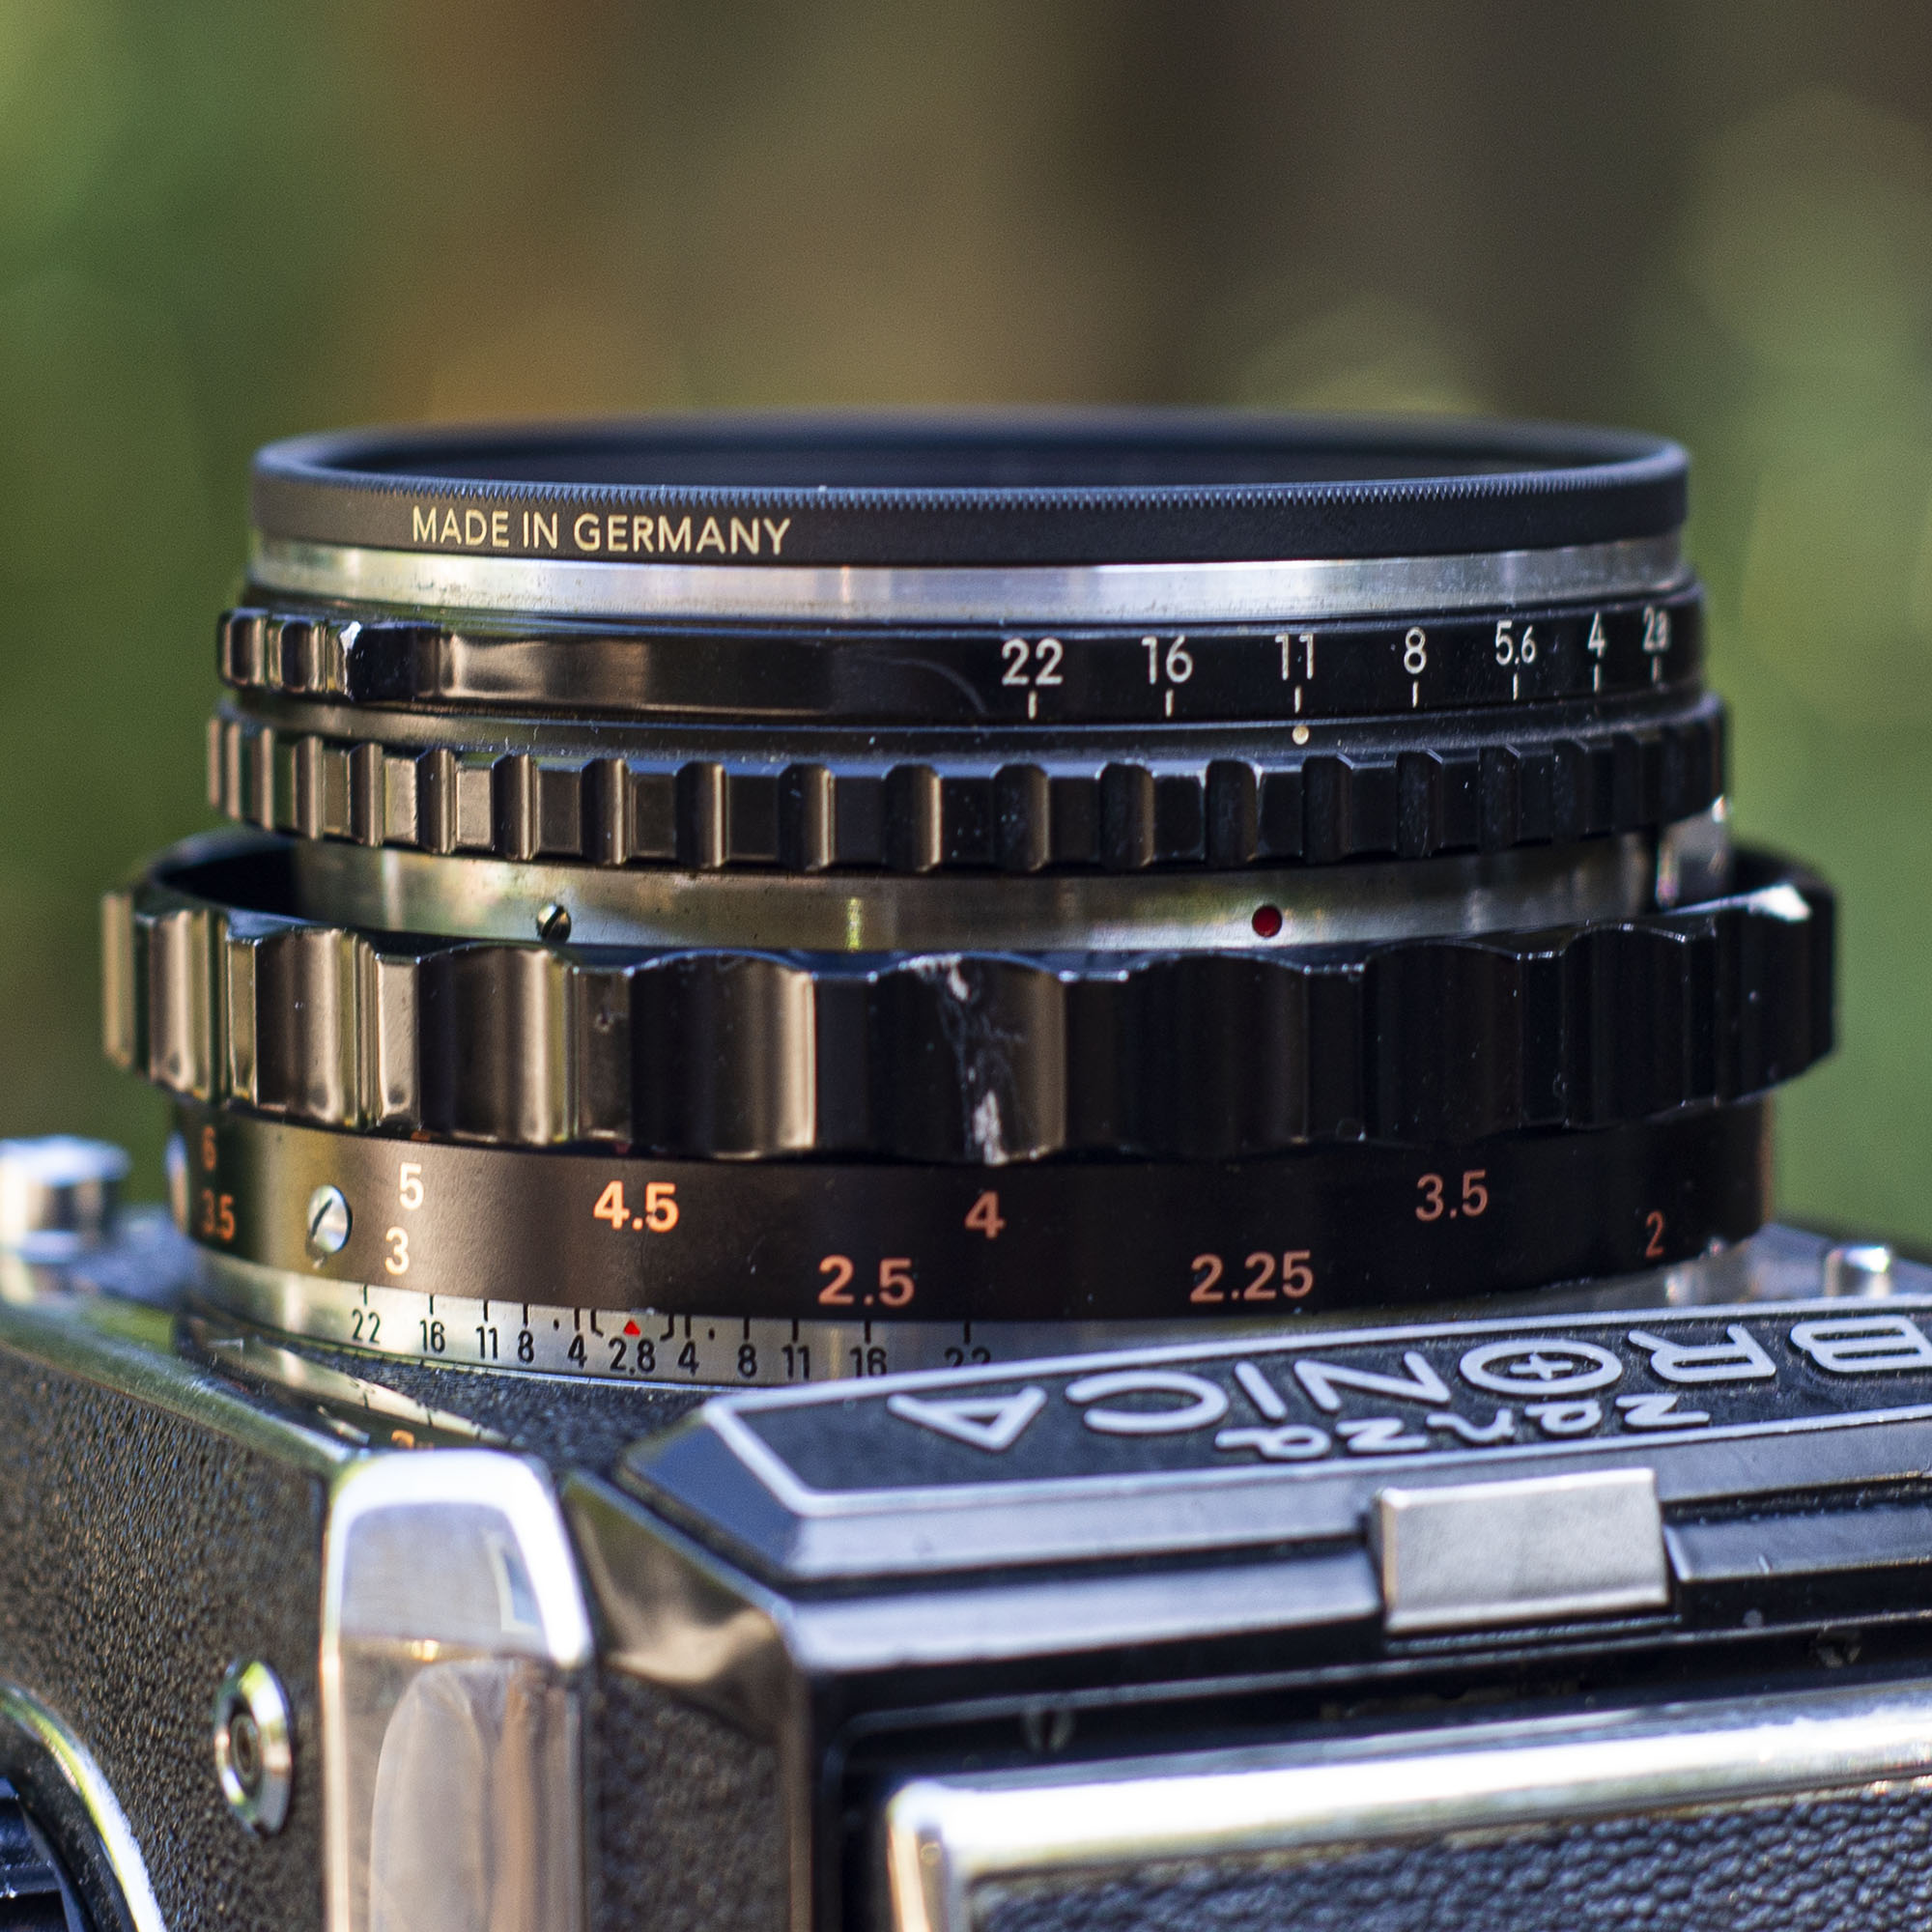 Bronica-Nikkor lens focal scale and aperture ring